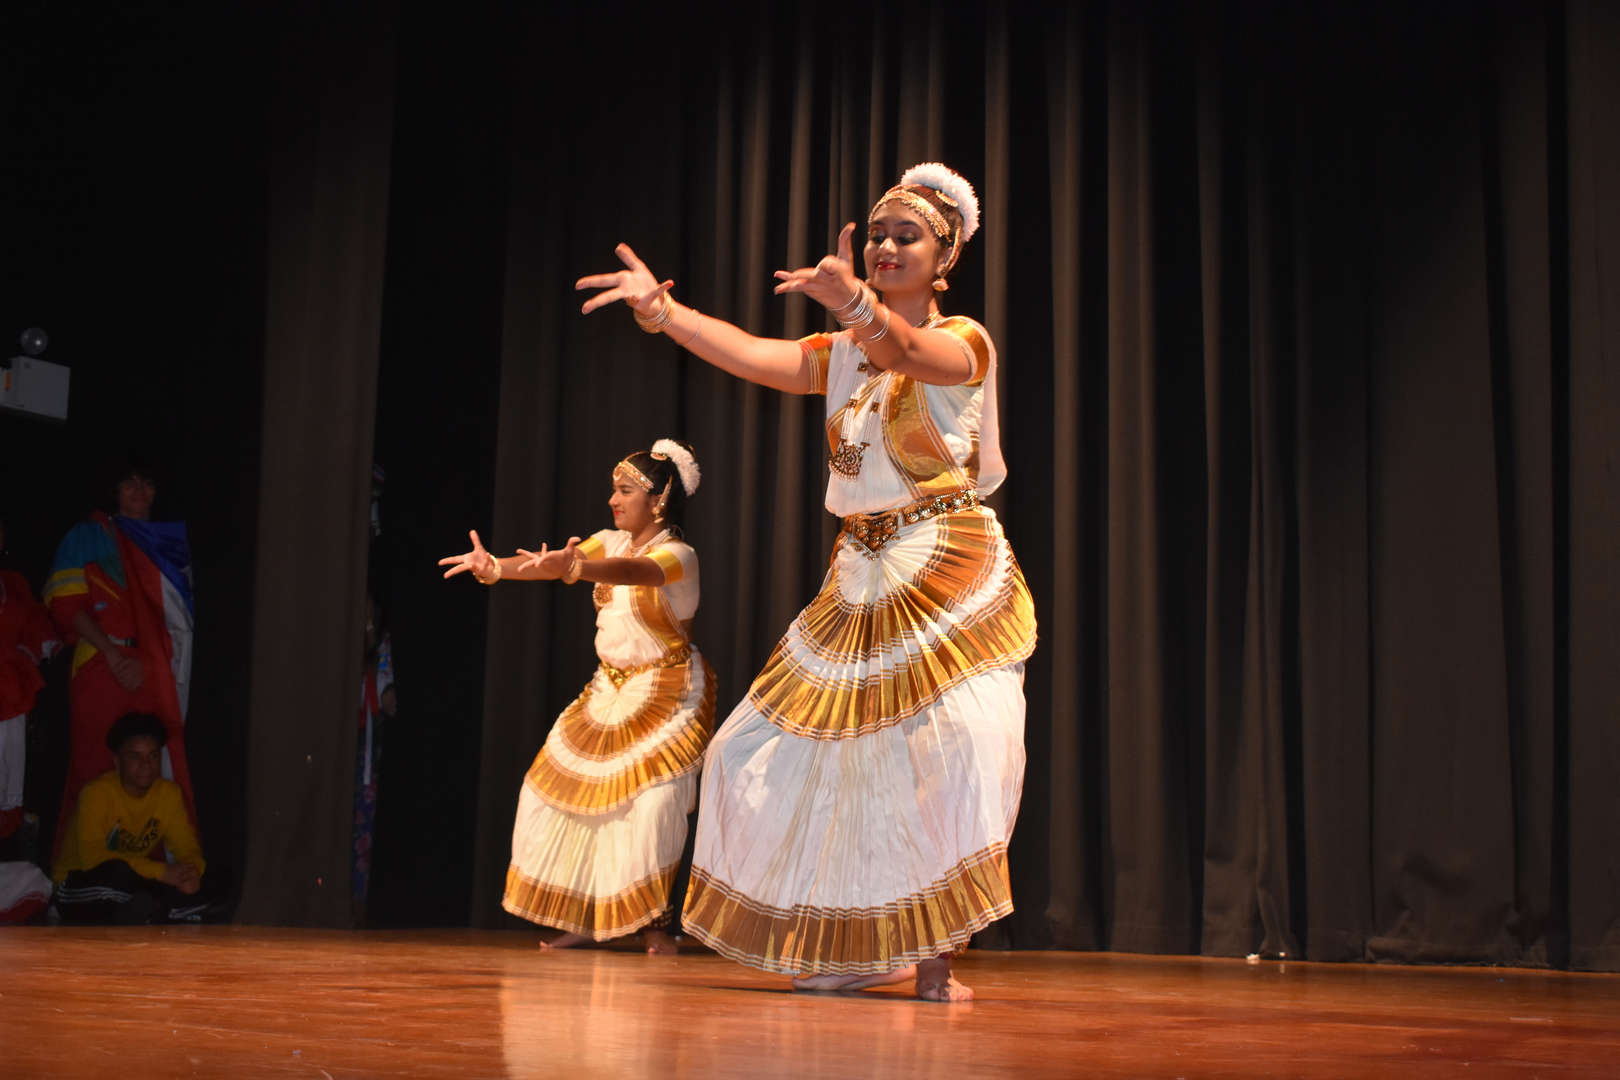 cultural dance performances on stage